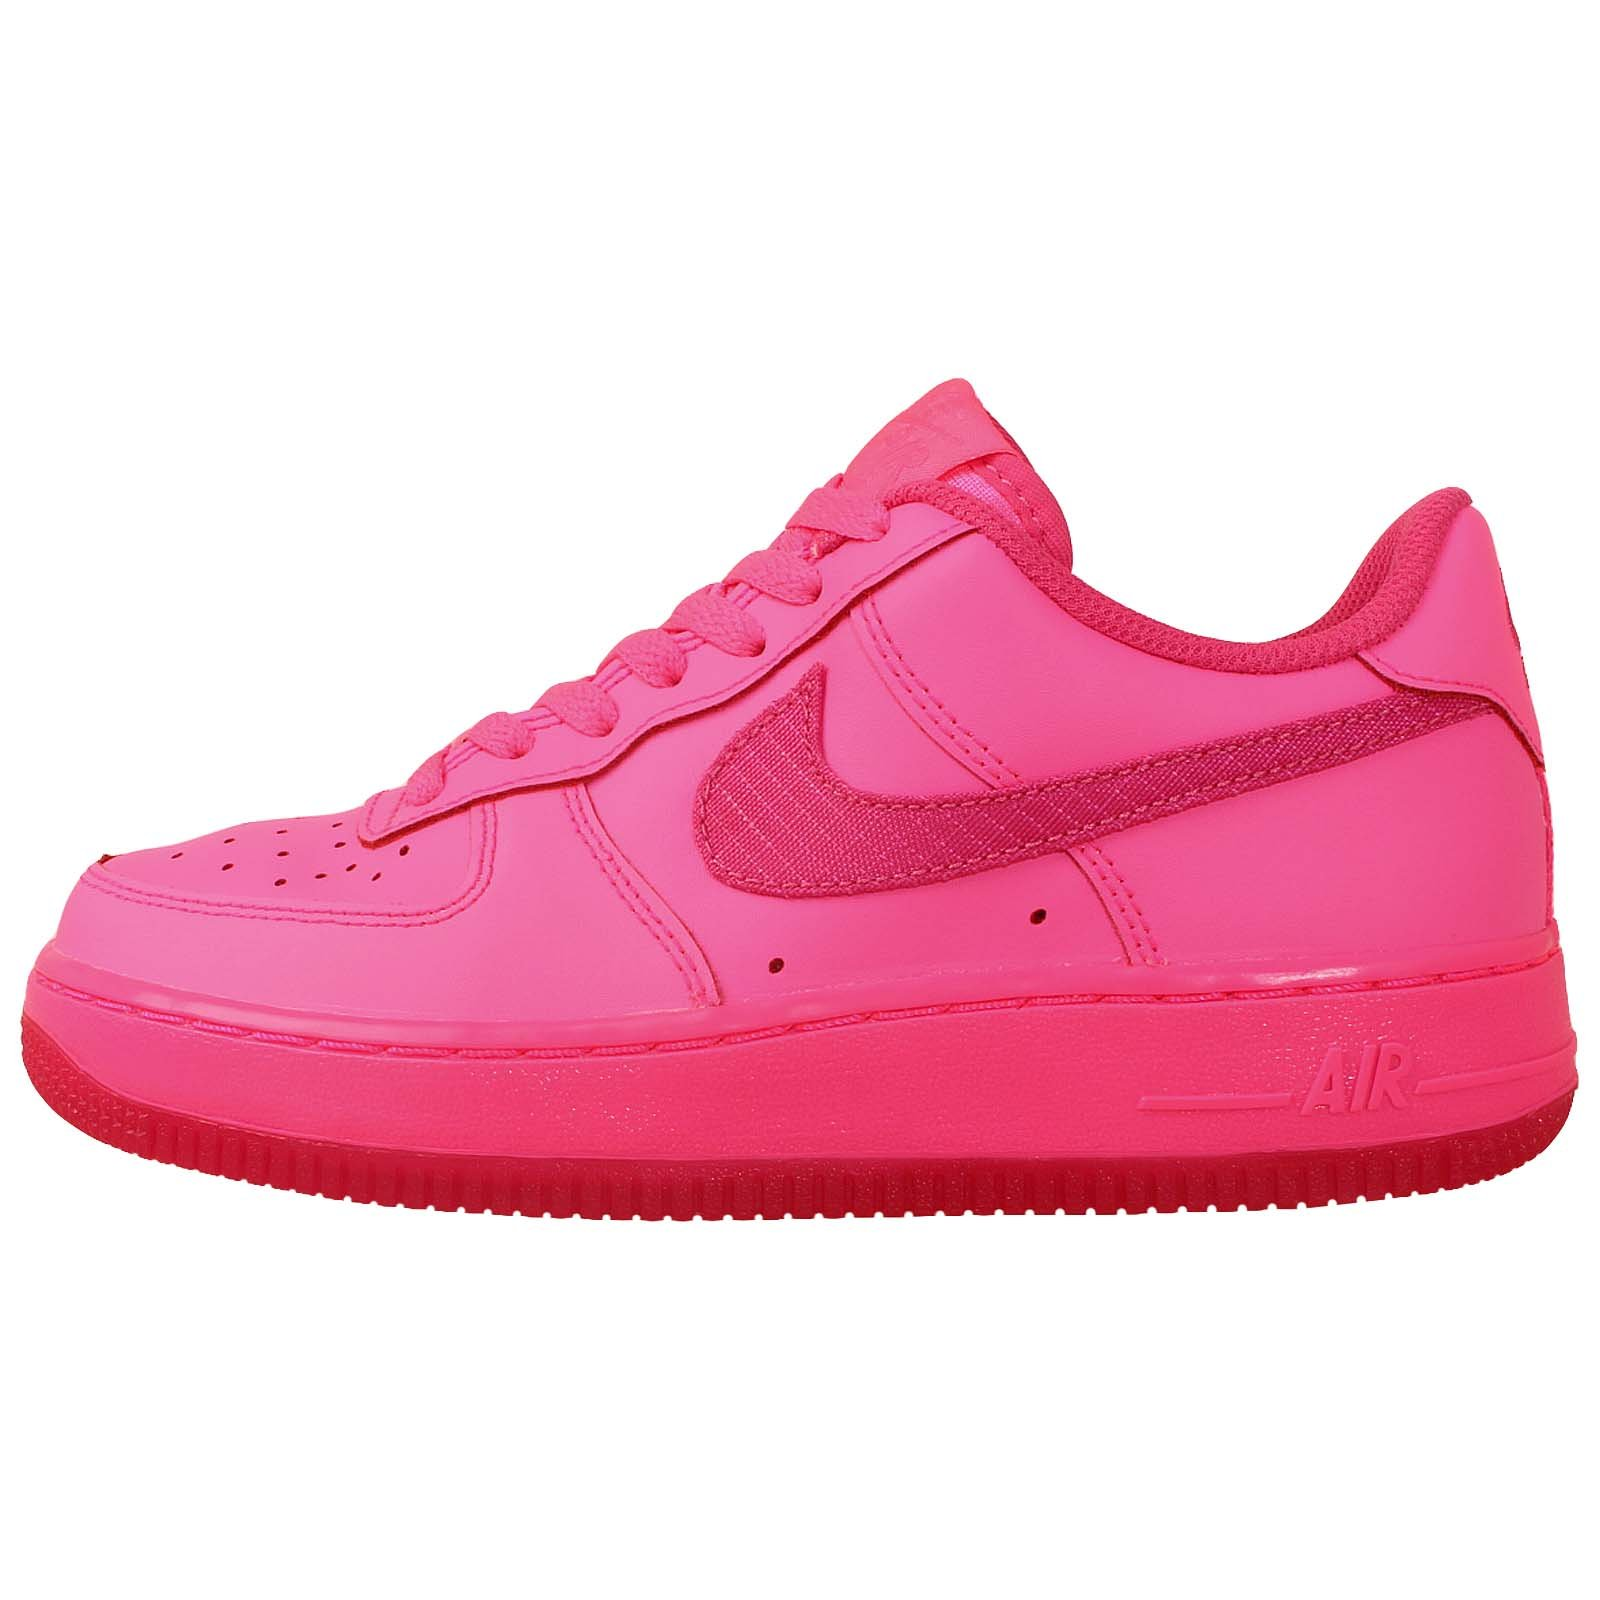 Nike Kid's Air Force 1 GS, HYPER PINK/VIVID PINK